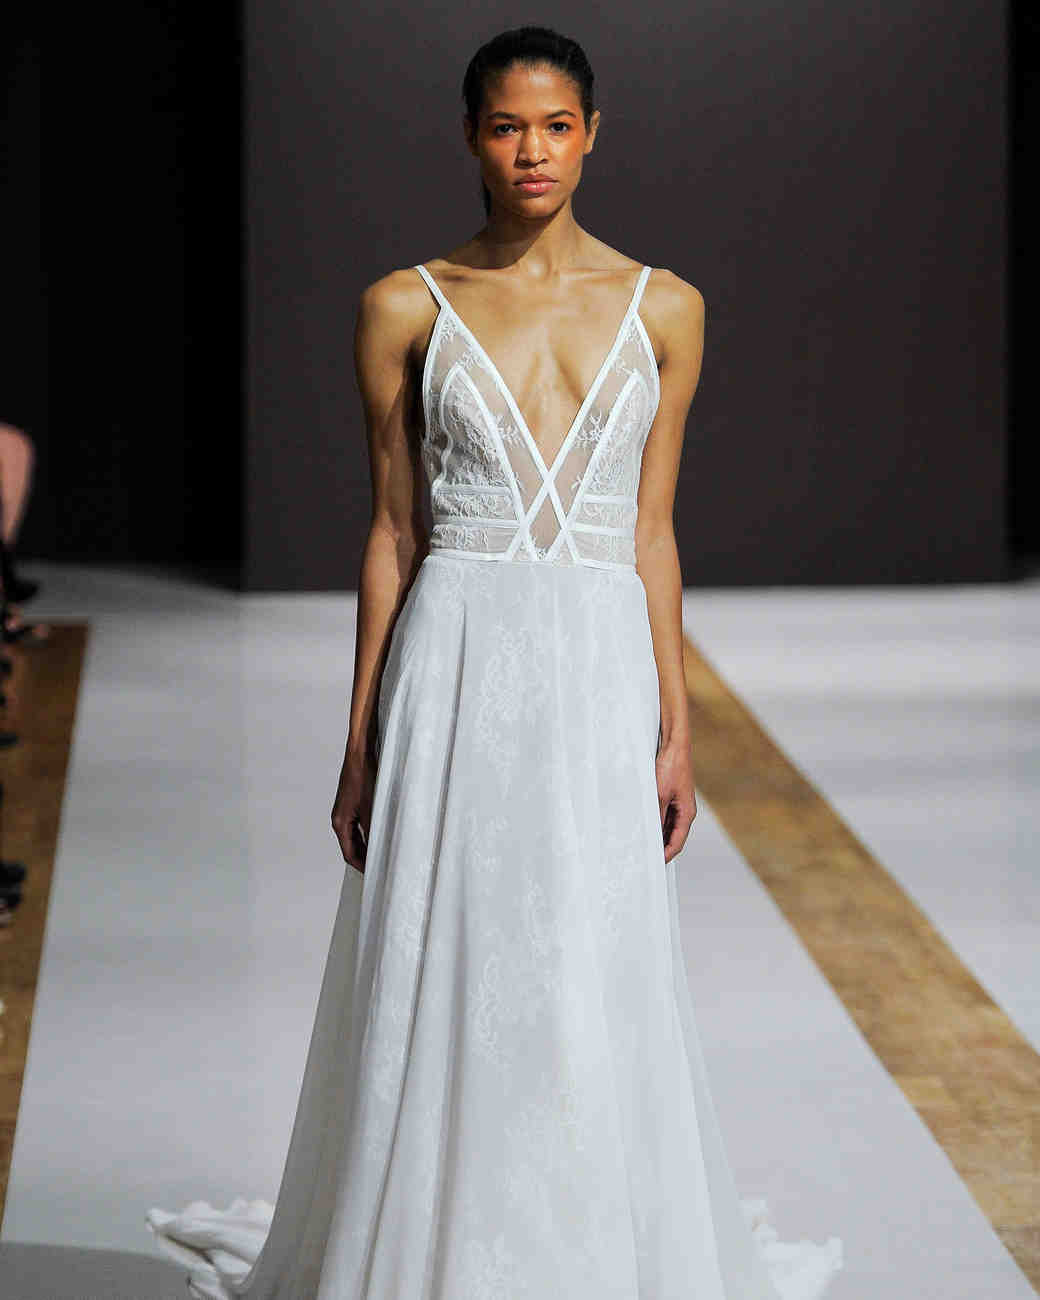 mark zunino wedding dress fall 2018 spaghetti strap deep v sheer panelsr